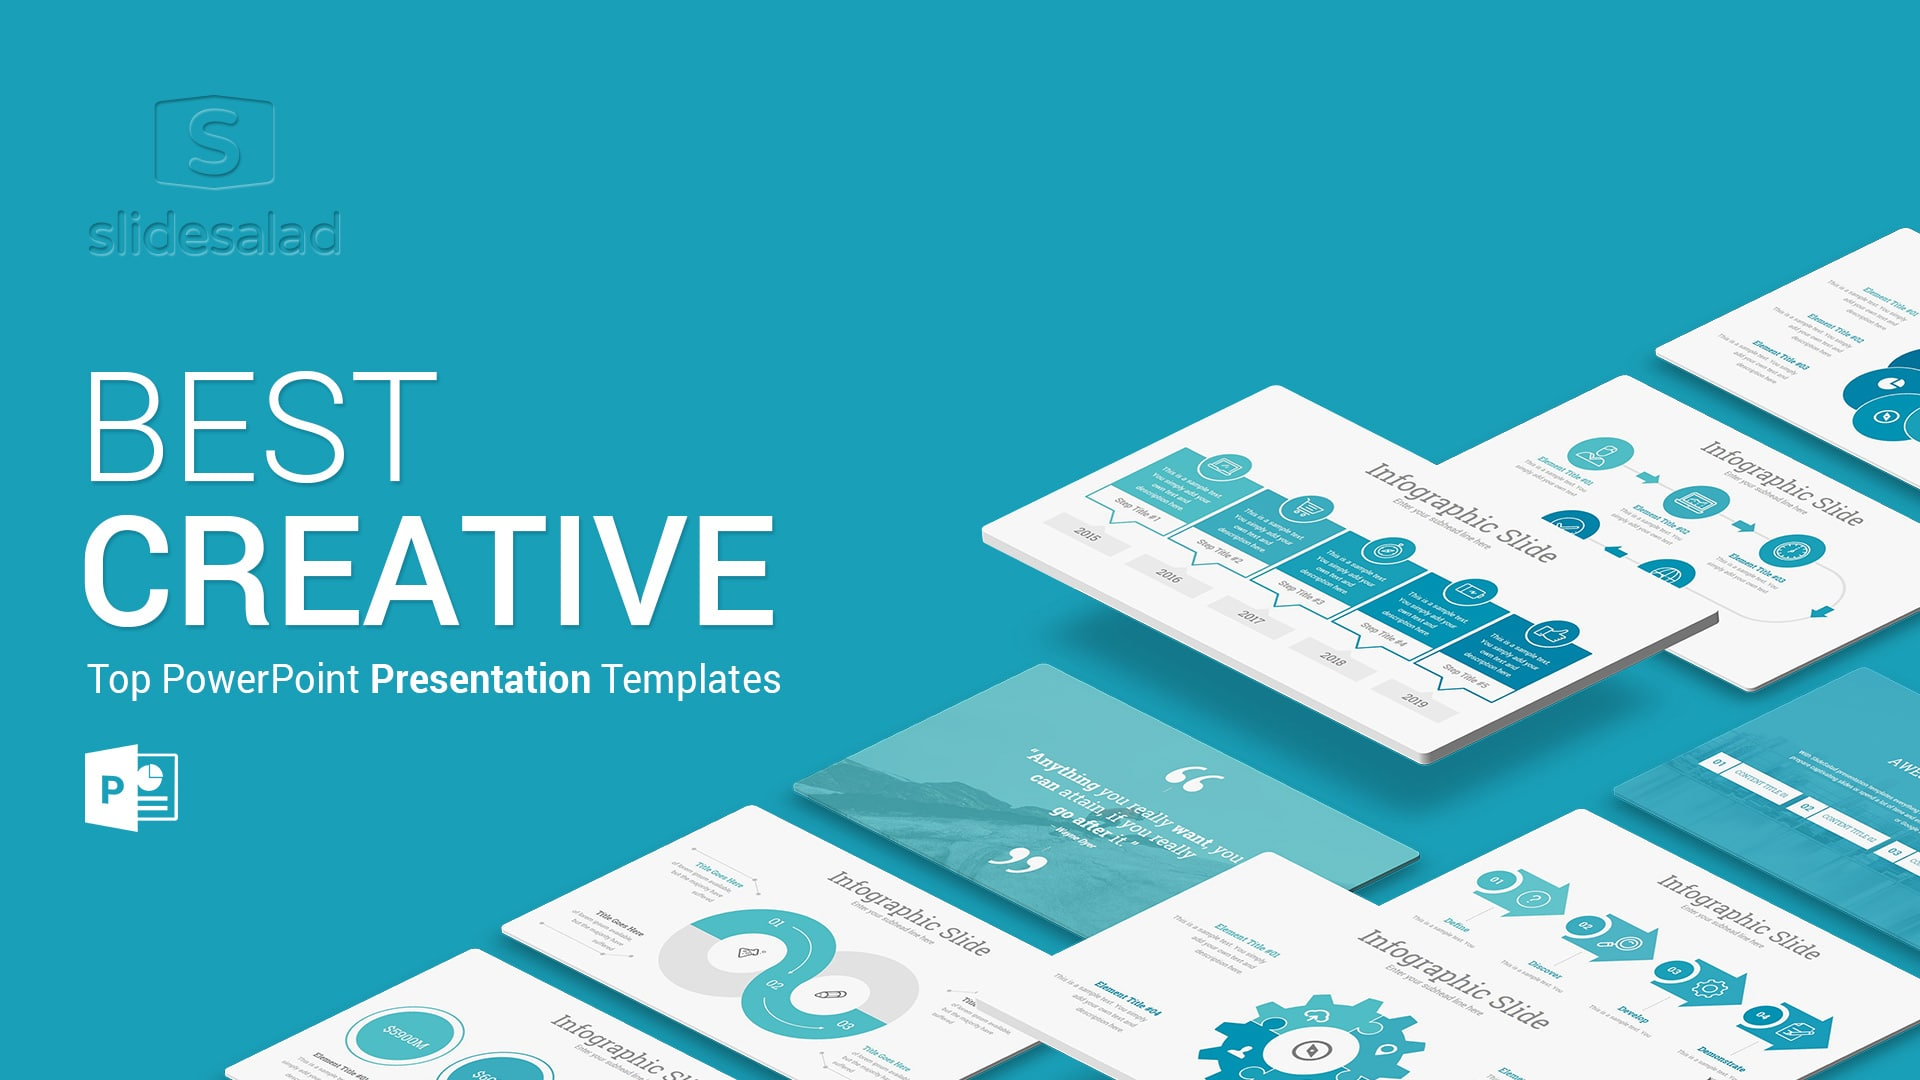 Best Creative Powerpoint Presentation Templates For 2020